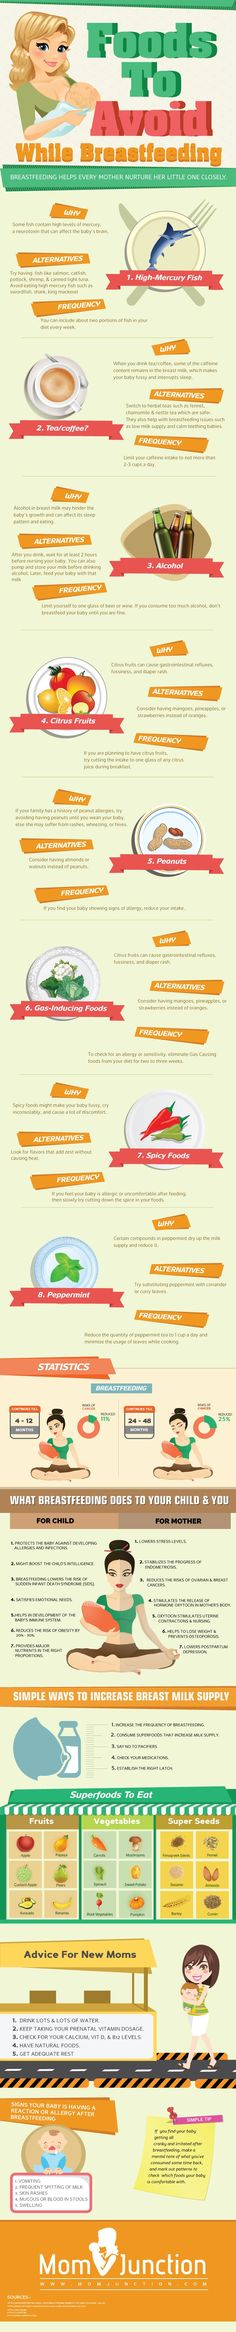 Foods To Avoid While Breastfeeding - Top 14 You Must Know Confused about food habits during breastfeeding your baby?Read on to find out our 10 best foods to avoid while breastfeeding to avoid complications in baby. Baby Kind, Baby On The Way, Our Baby, Breastfeeding And Pumping, Breastfeeding Benefits, Breastfeeding Images, Breastfeeding Positions, Breastfeeding Support, After Baby